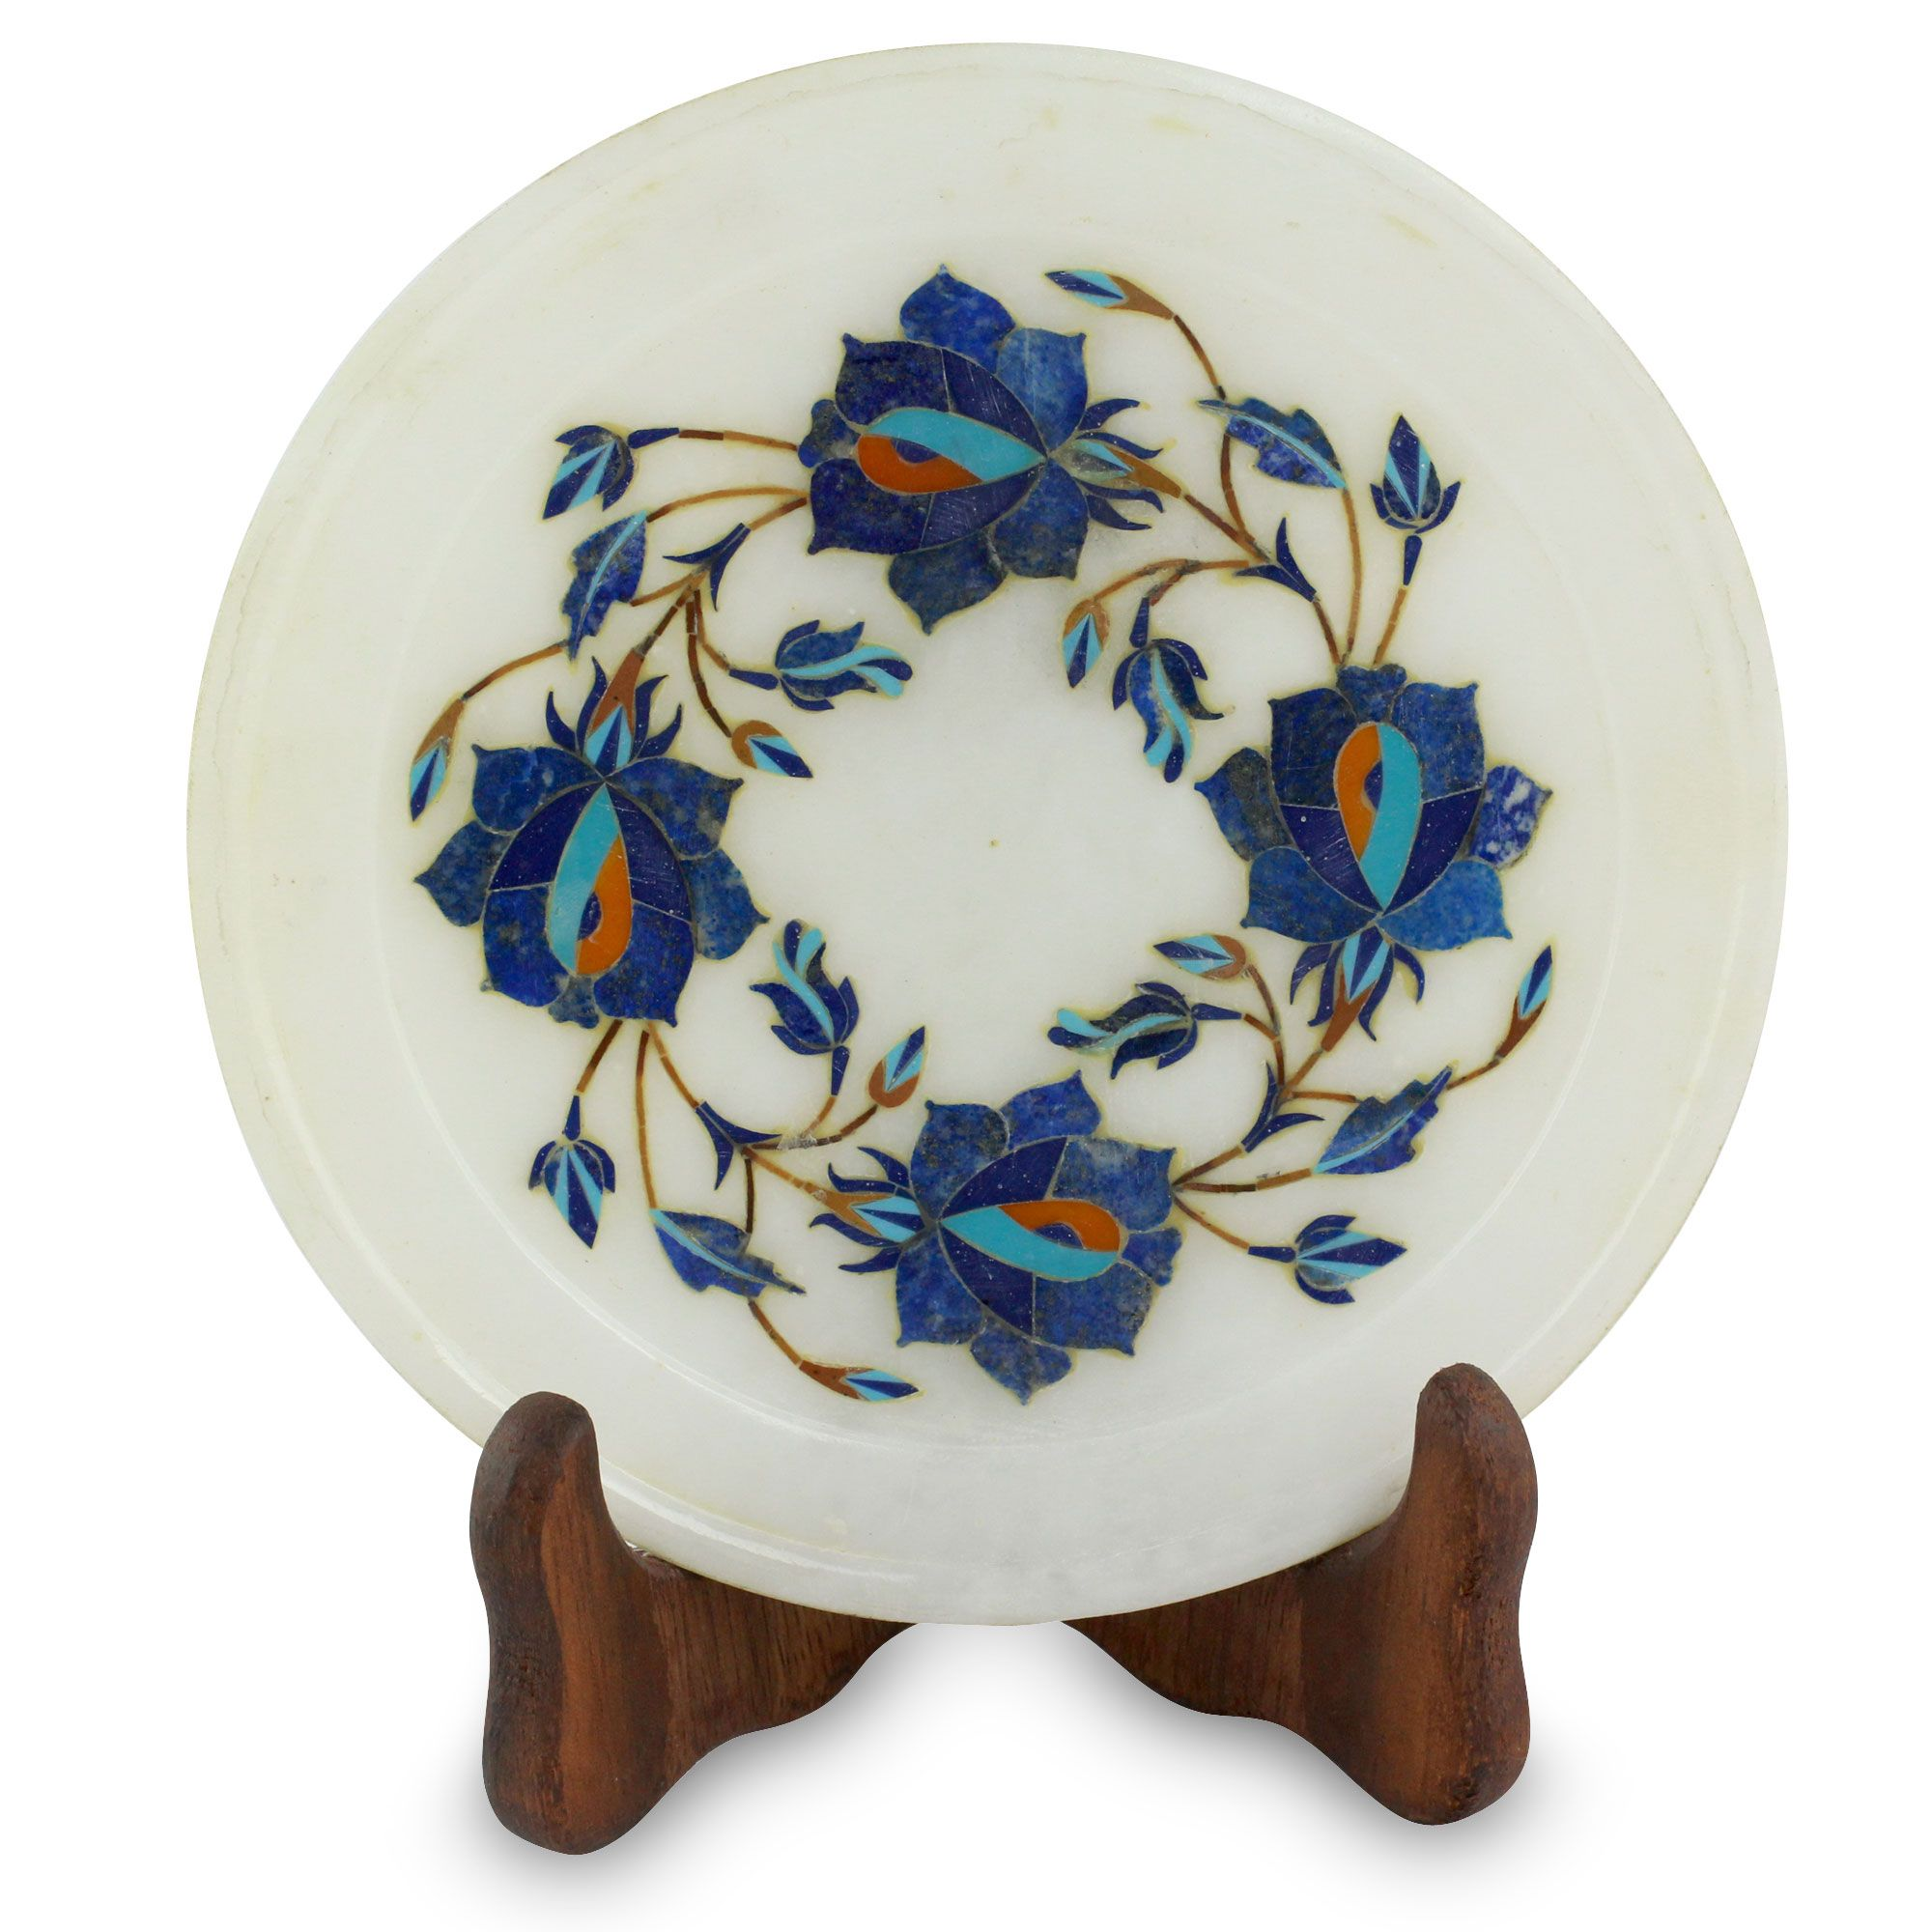 Artisan Crafted Inlaid Marble Decorative Plate - Blue Garland | NOVICA